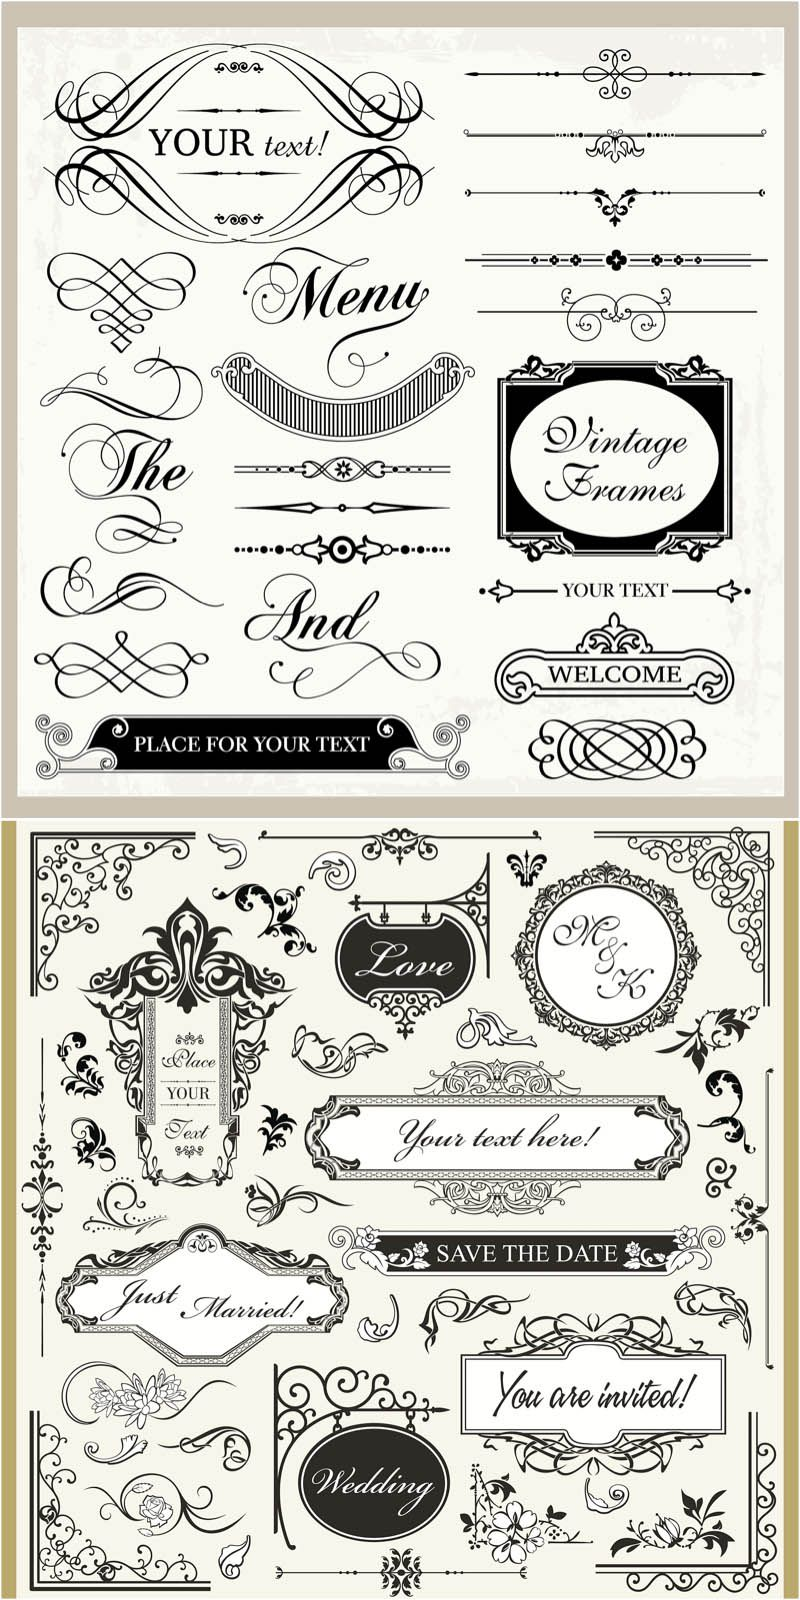 Vintage wedding ornaments vector wedding inspiration pinterest vintage wedding ornaments vector stopboris Choice Image